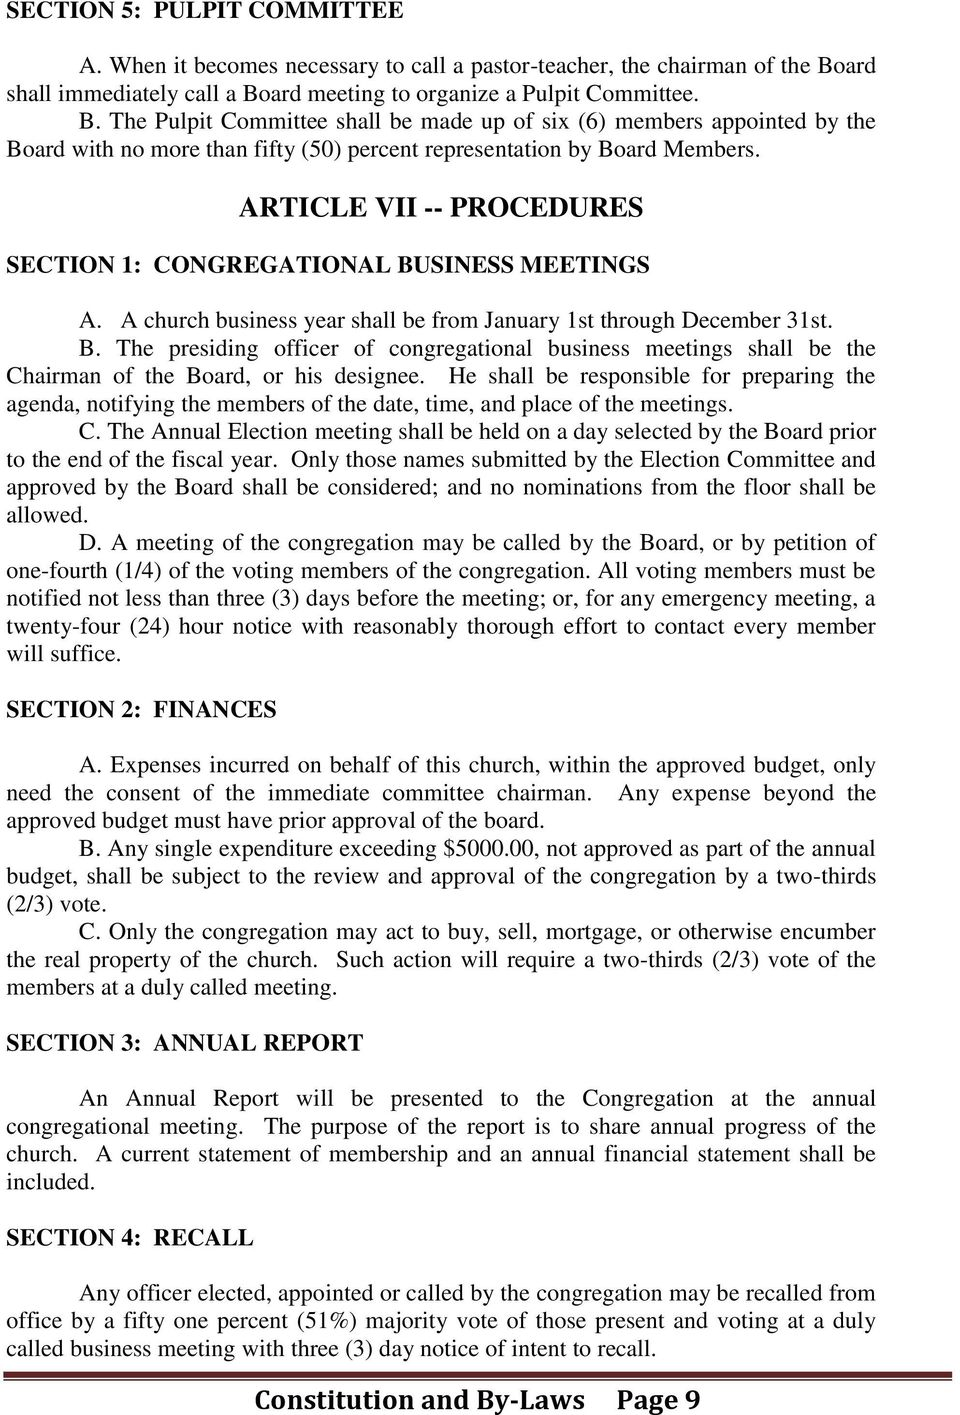 ARTICLE VII -- PROCEDURES SECTION 1: CONGREGATIONAL BUSINESS MEETINGS A. A church business year shall be from January 1st through December 31st. B. The presiding officer of congregational business meetings shall be the Chairman of the Board, or his designee.